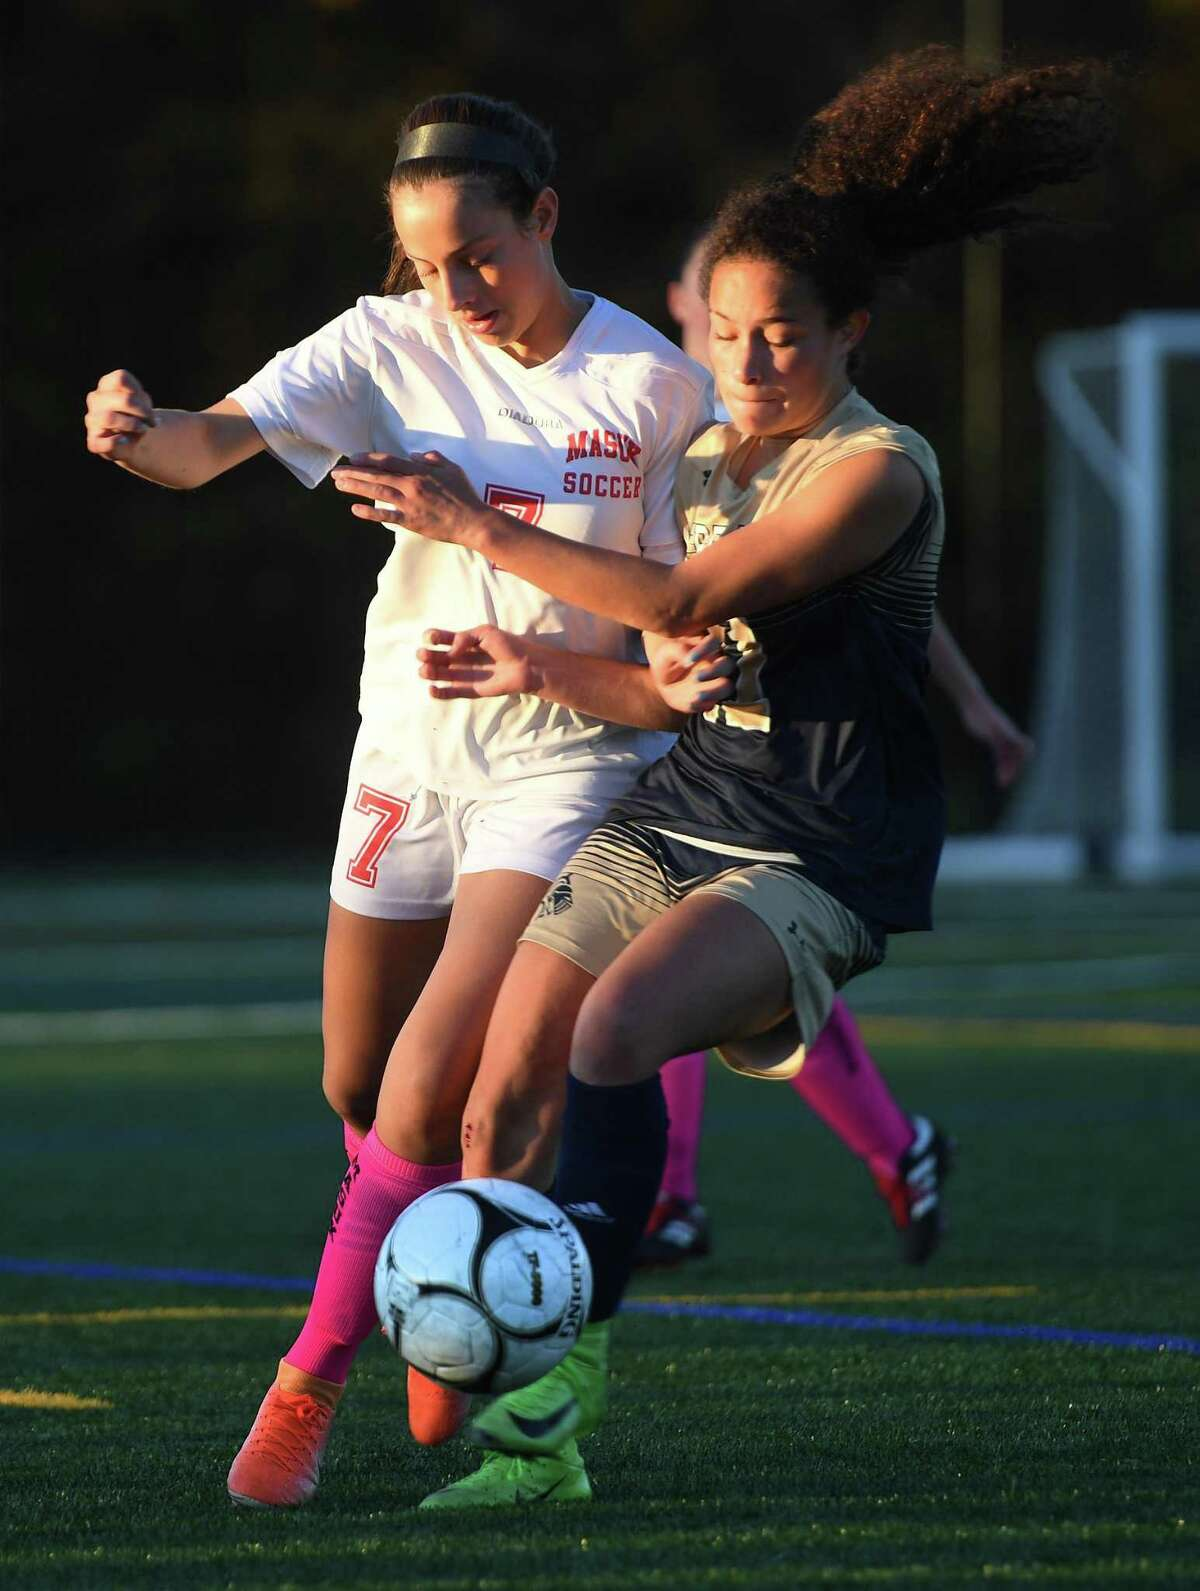 Masuk's Amanda Campos, left, and Notre Dame of Fairfield's Toni Domingos battle for the ball during their 0-0 tie SWC girls soccer match in Fairfield, Conn. on Monday, October 28, 2019.